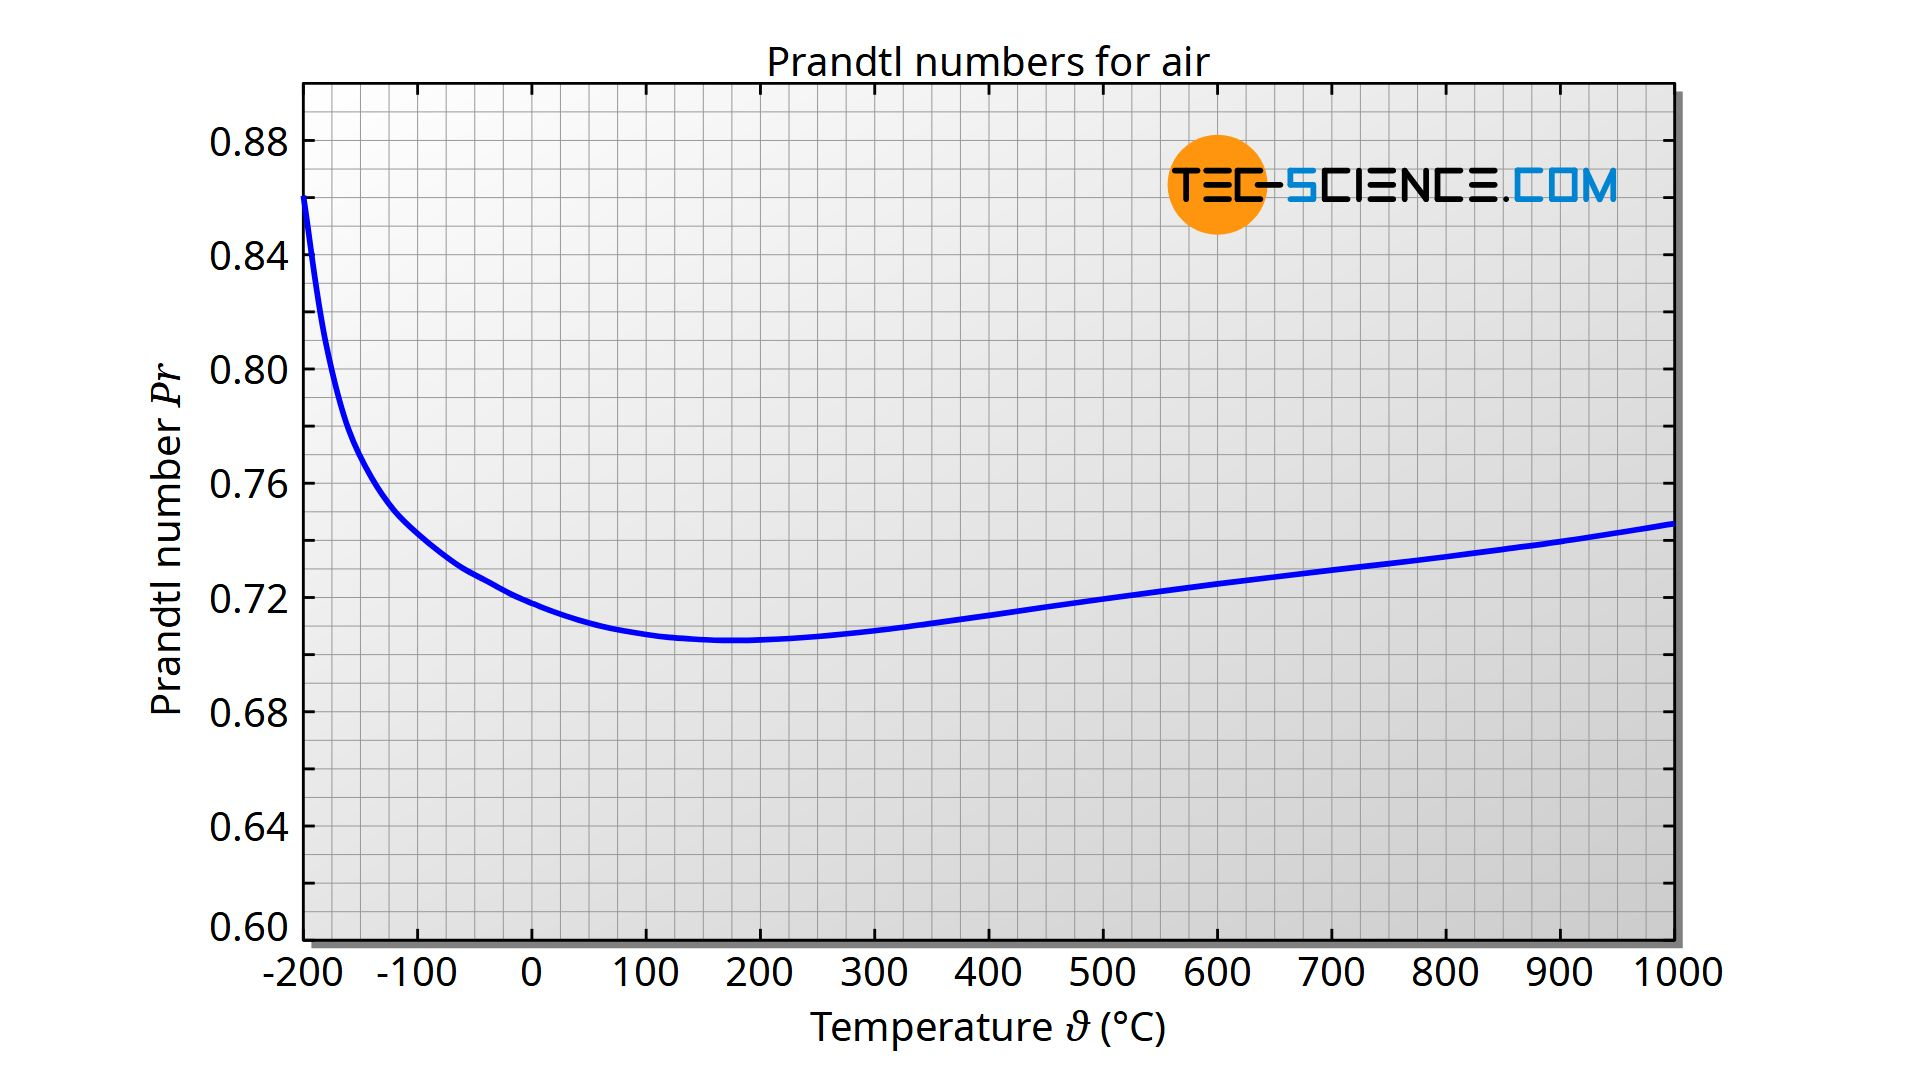 Prandtl numbers for air as a function of temperature